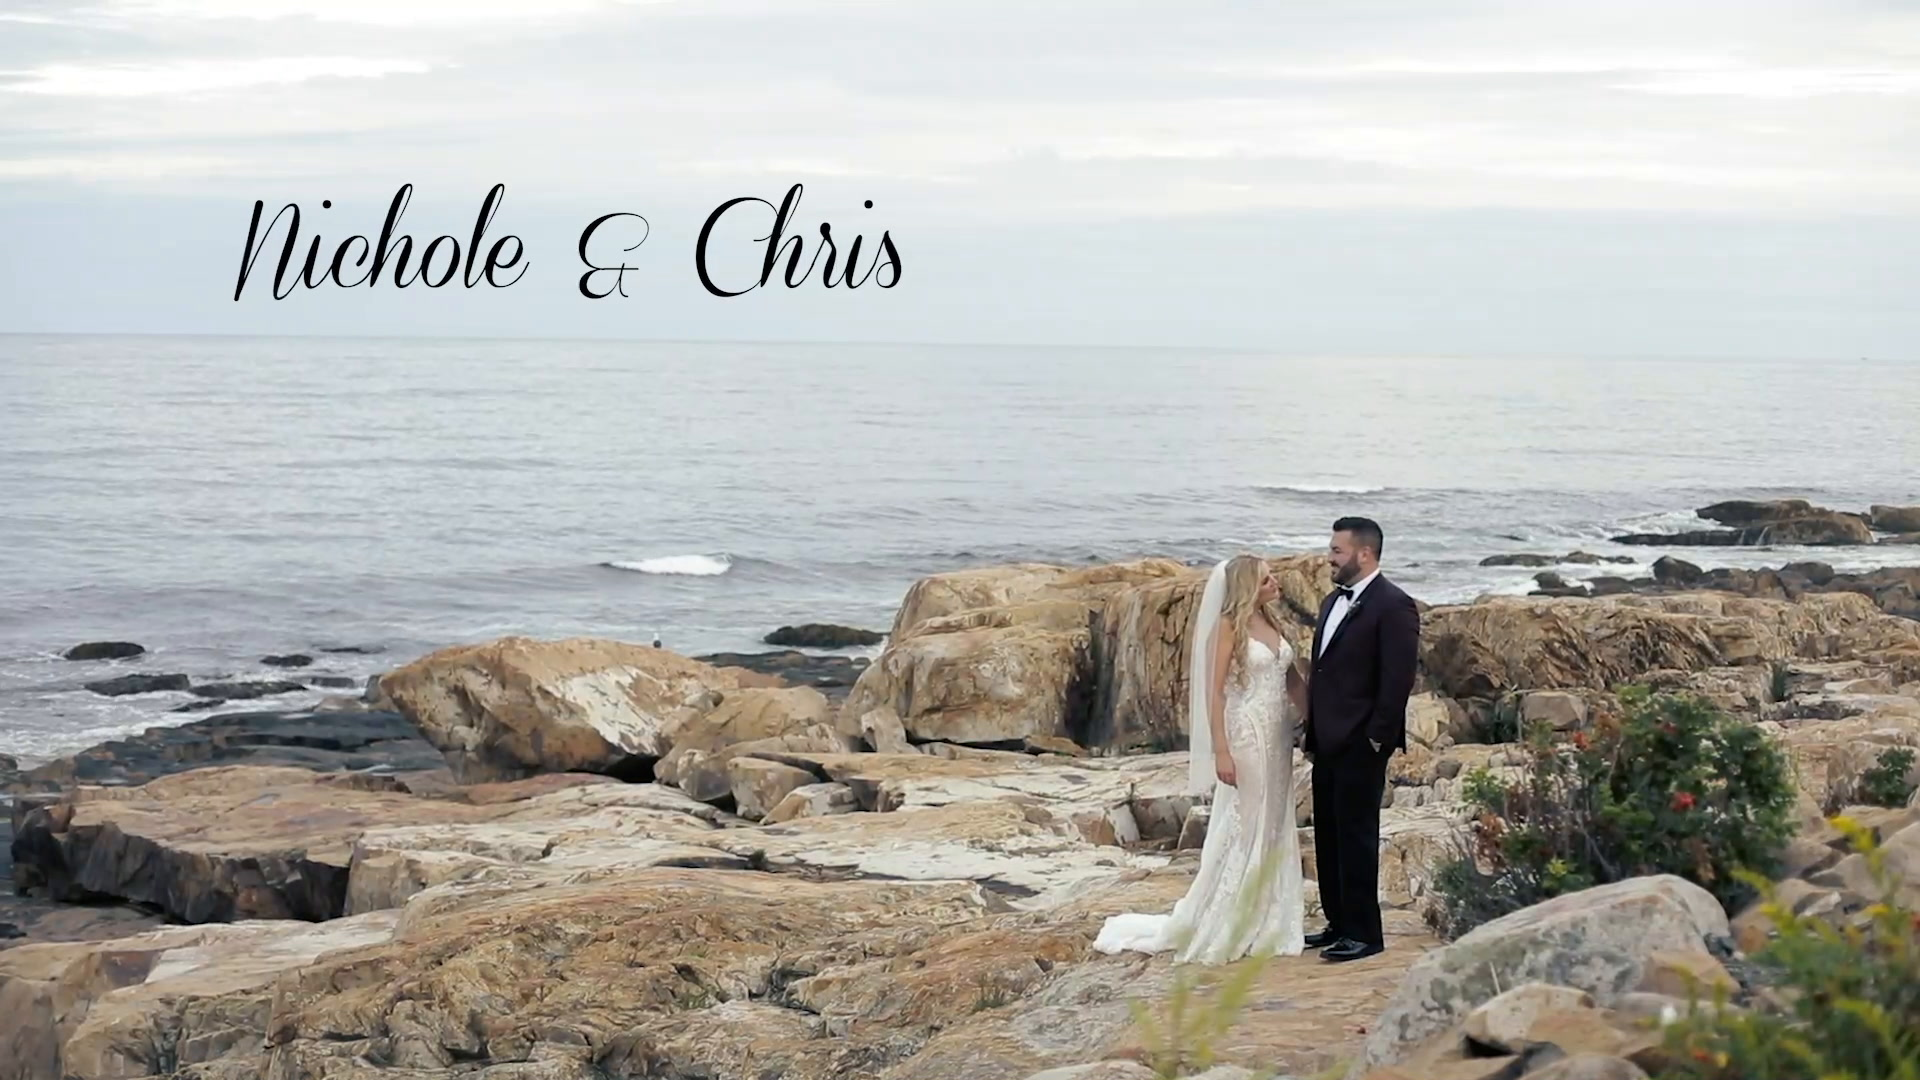 Nichole + Chris | Gloucester, Massachusetts | The Elks at Bass Rocks